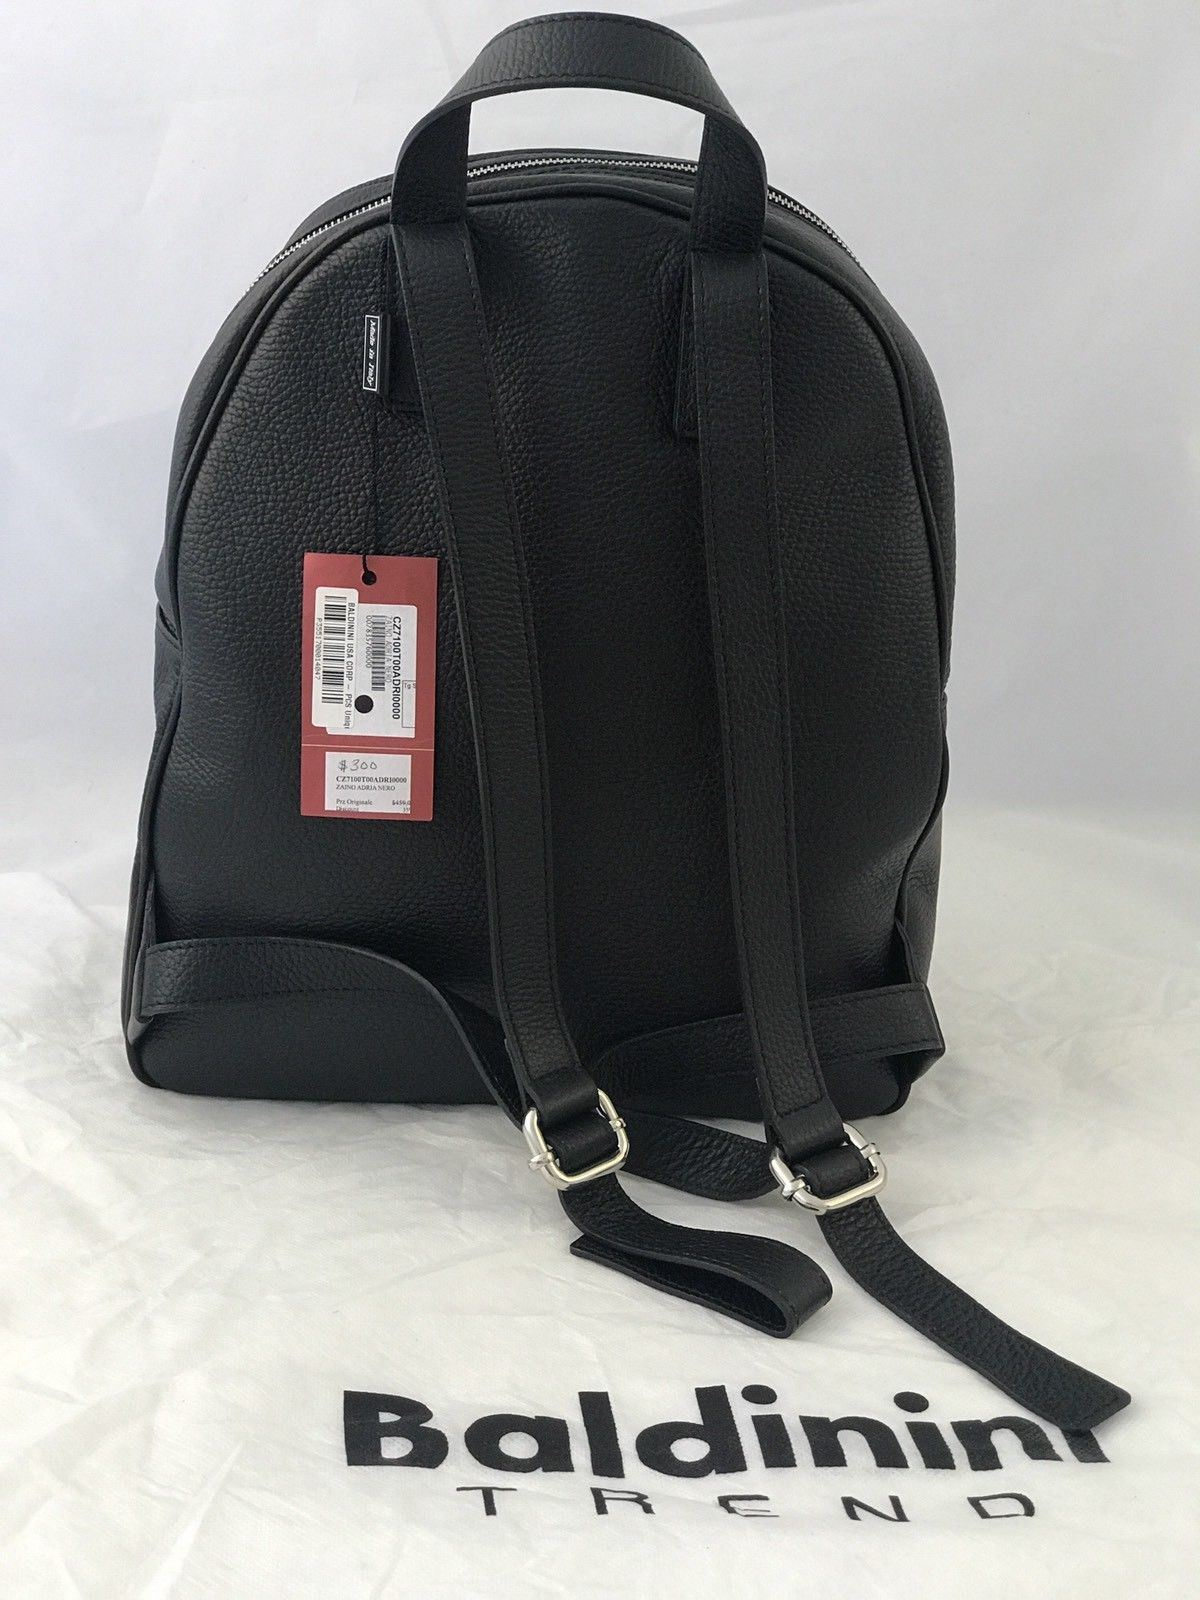 NWT $459 BALDININI TREND ZAINO ADRIA NERO LEATHER BACKPACK Made In Italy - BAYSUPERSTORE